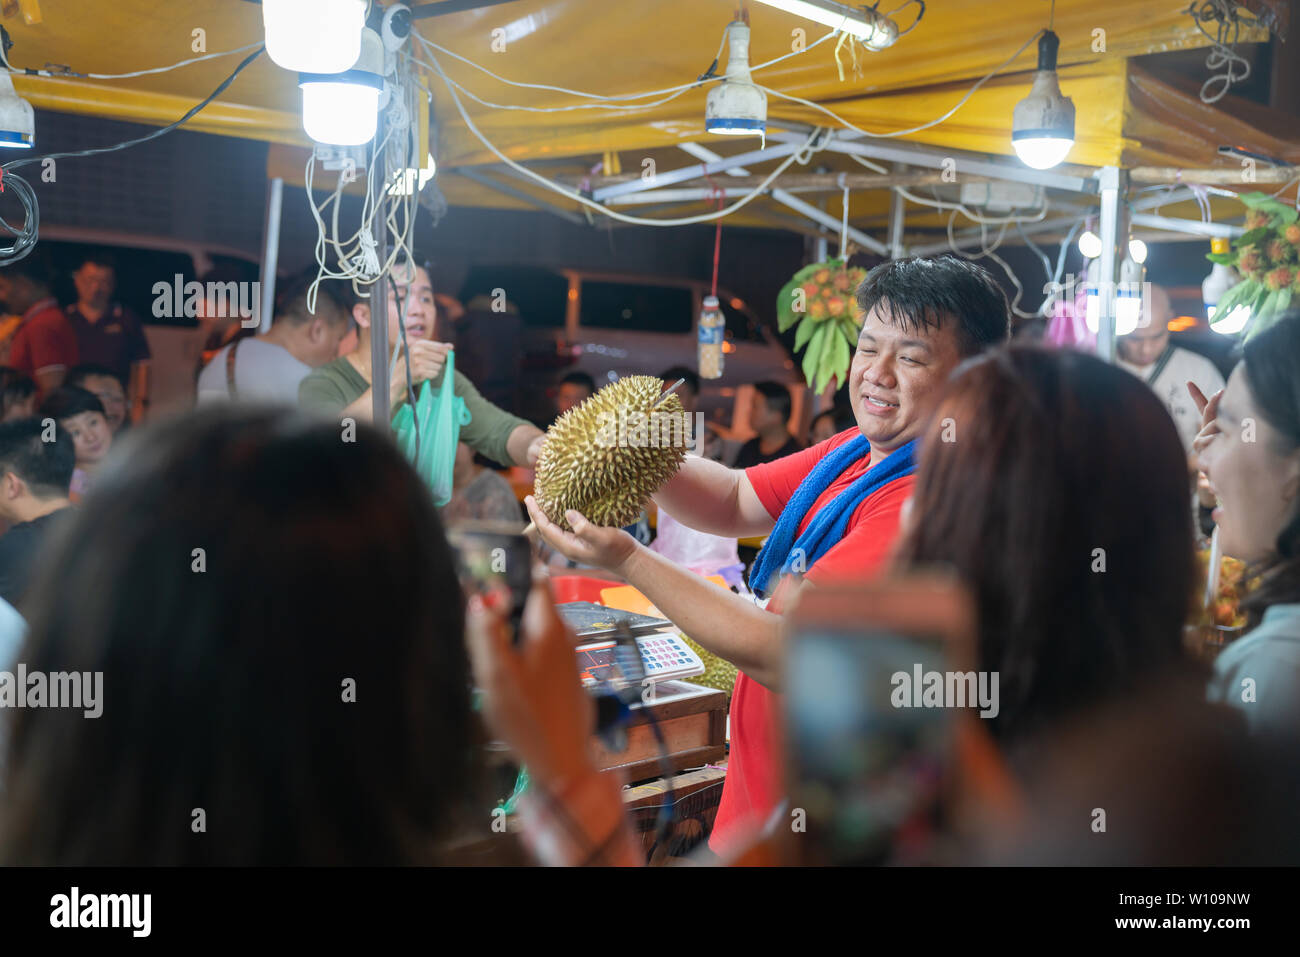 KOTA KINABULU, BORNEO - JUNE 1 2019; Night street market for locals selling delicacy but smelly durian fruit - Stock Image